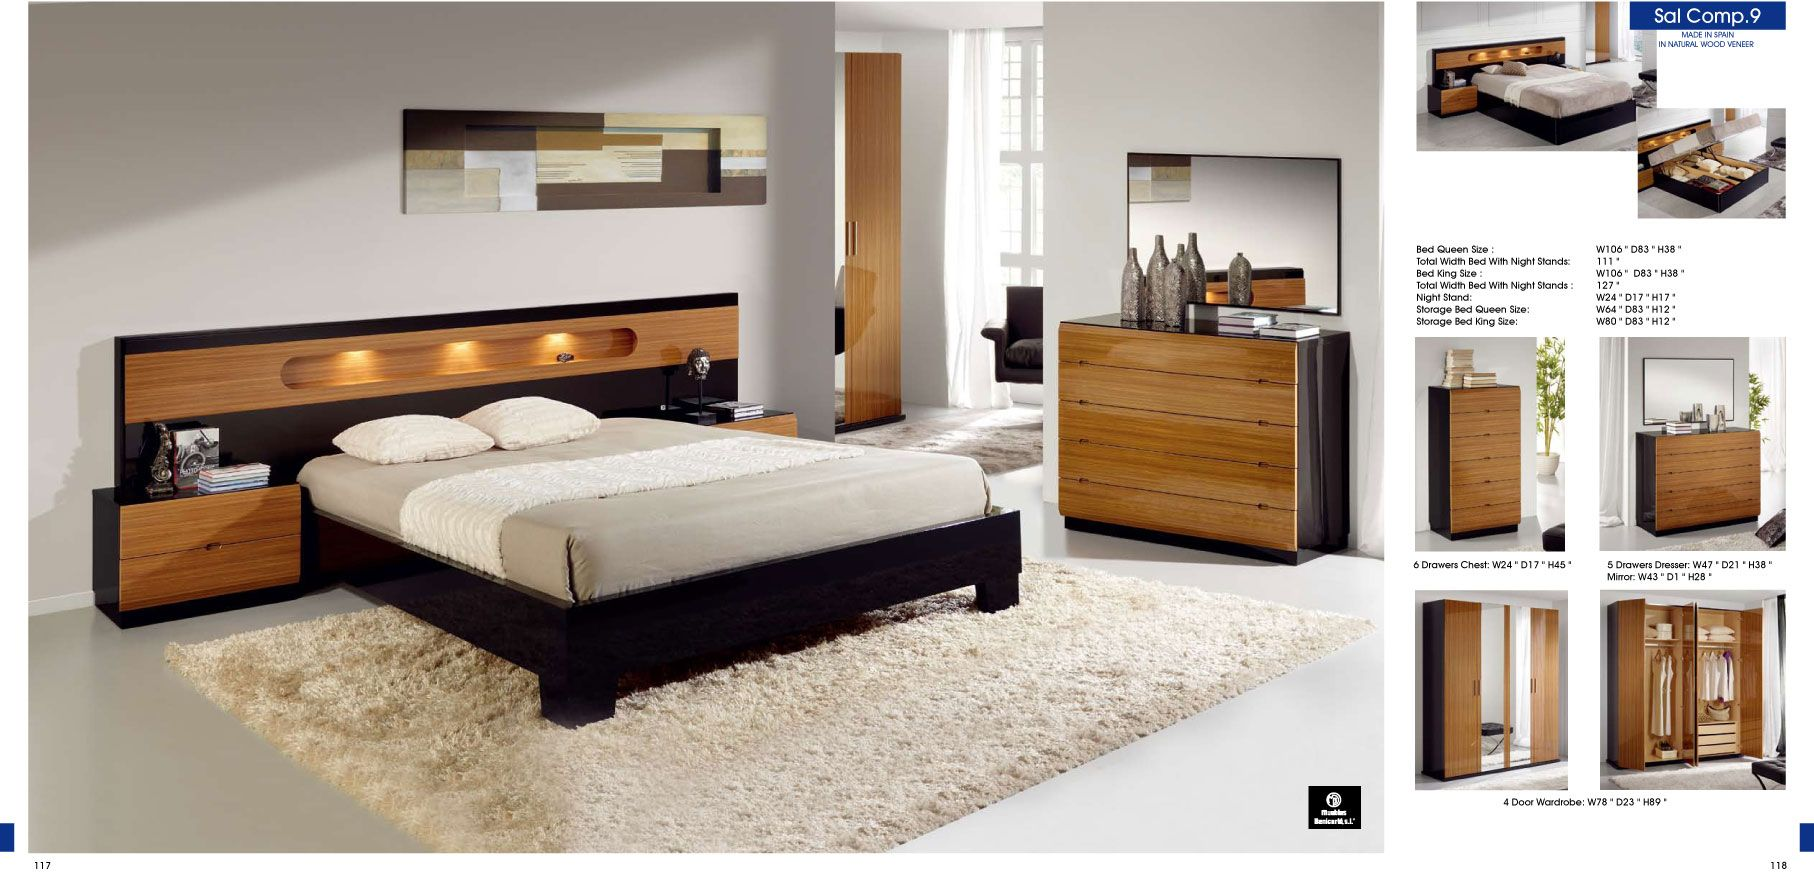 7PC King Bedroom Set/52224 | New House | Pinterest | King Bedroom, Queen  Bedroom And Bedrooms